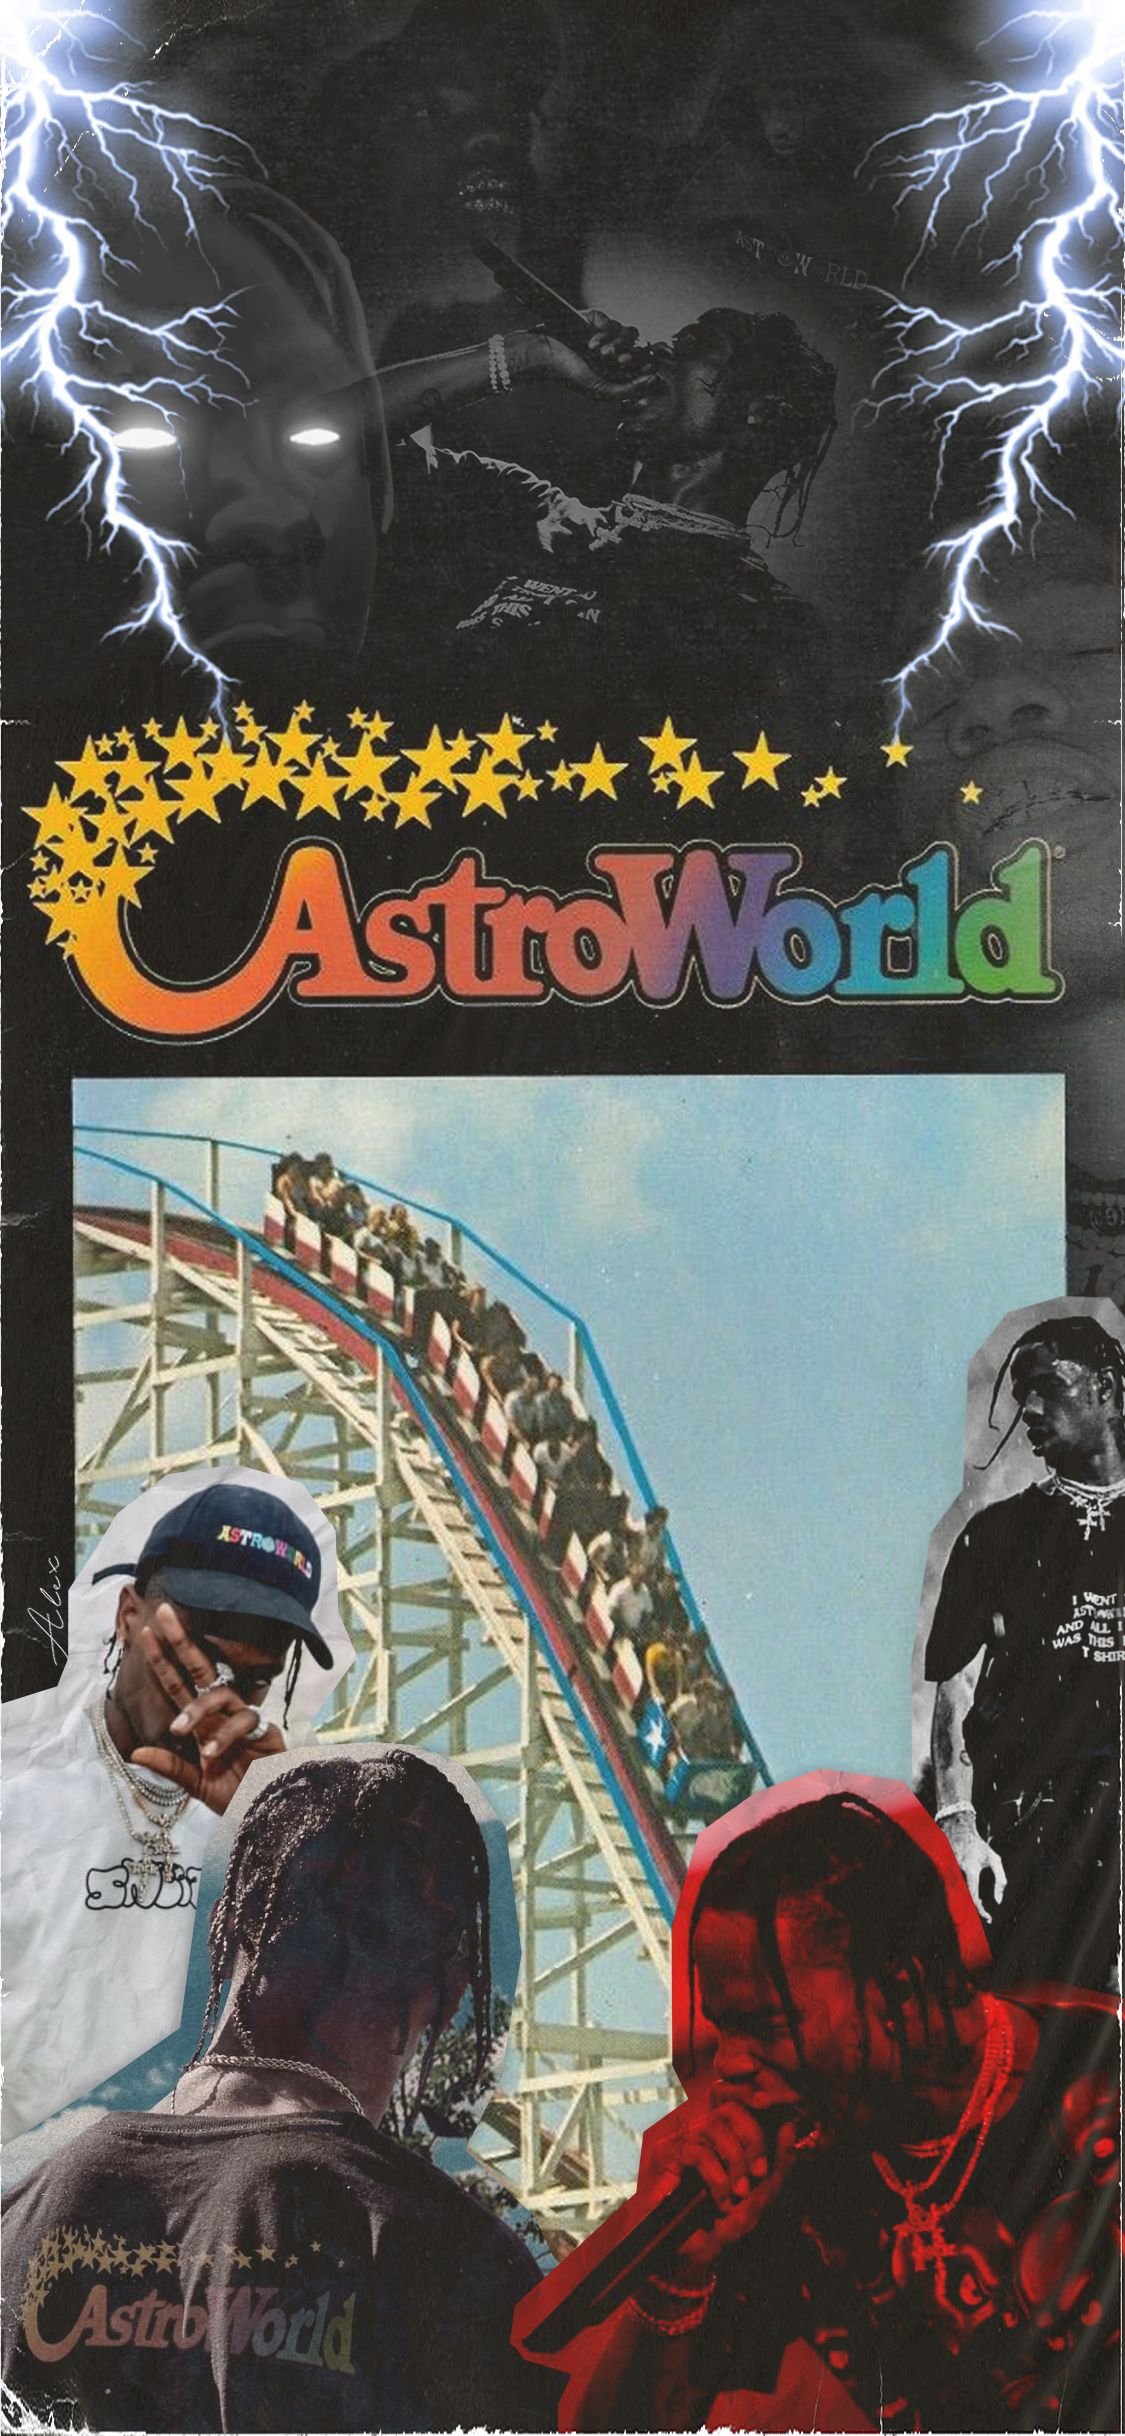 Travis Scott Astroworld Iphone Wallpaper Travis Scott Iphone Wallpaper Travis Scott Wallpapers Iphone Wallpaper Vintage Quotes